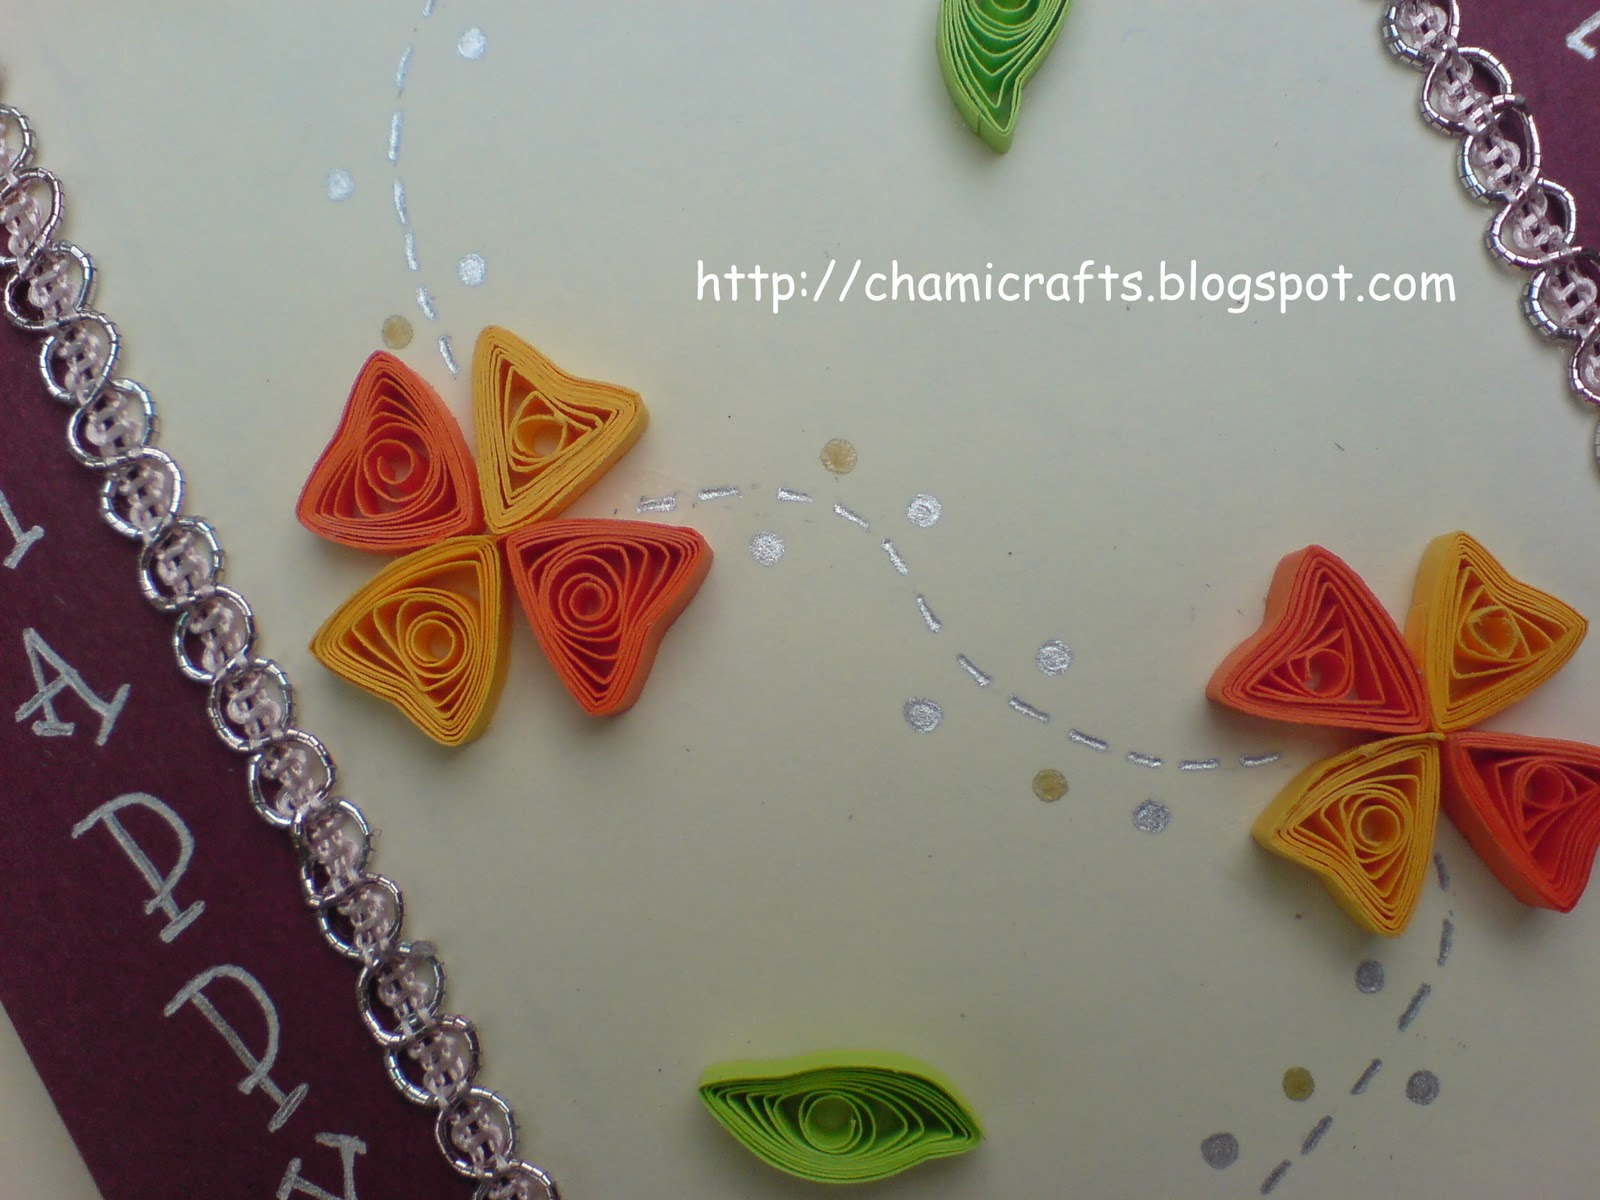 Chami Crafts  Handmade Greeting Cards: Another Bithday Card design